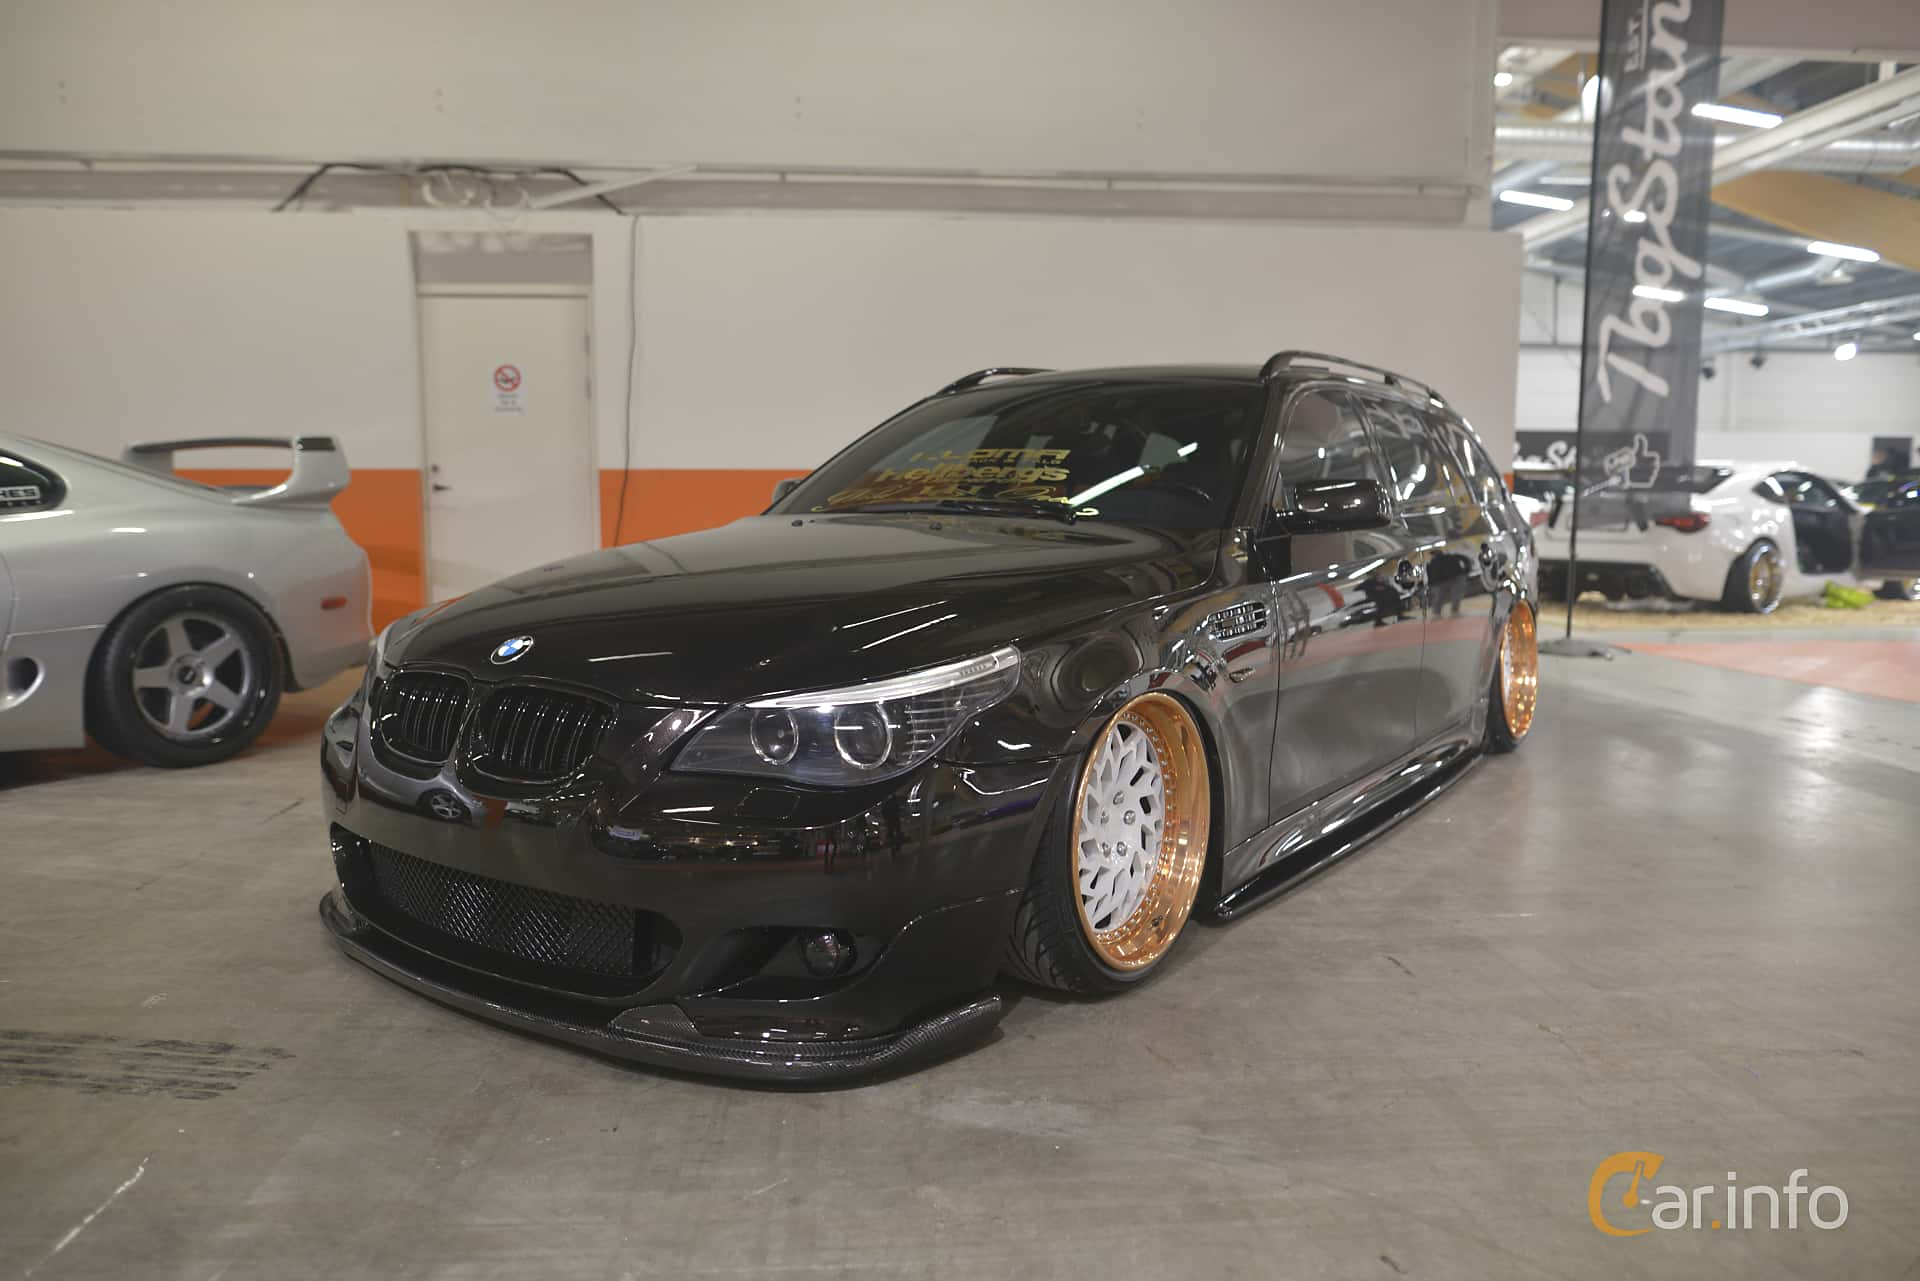 Front/Side  of BMW 5 Series Touring 2004 at Bilsport Performance & Custom Motor Show 2019